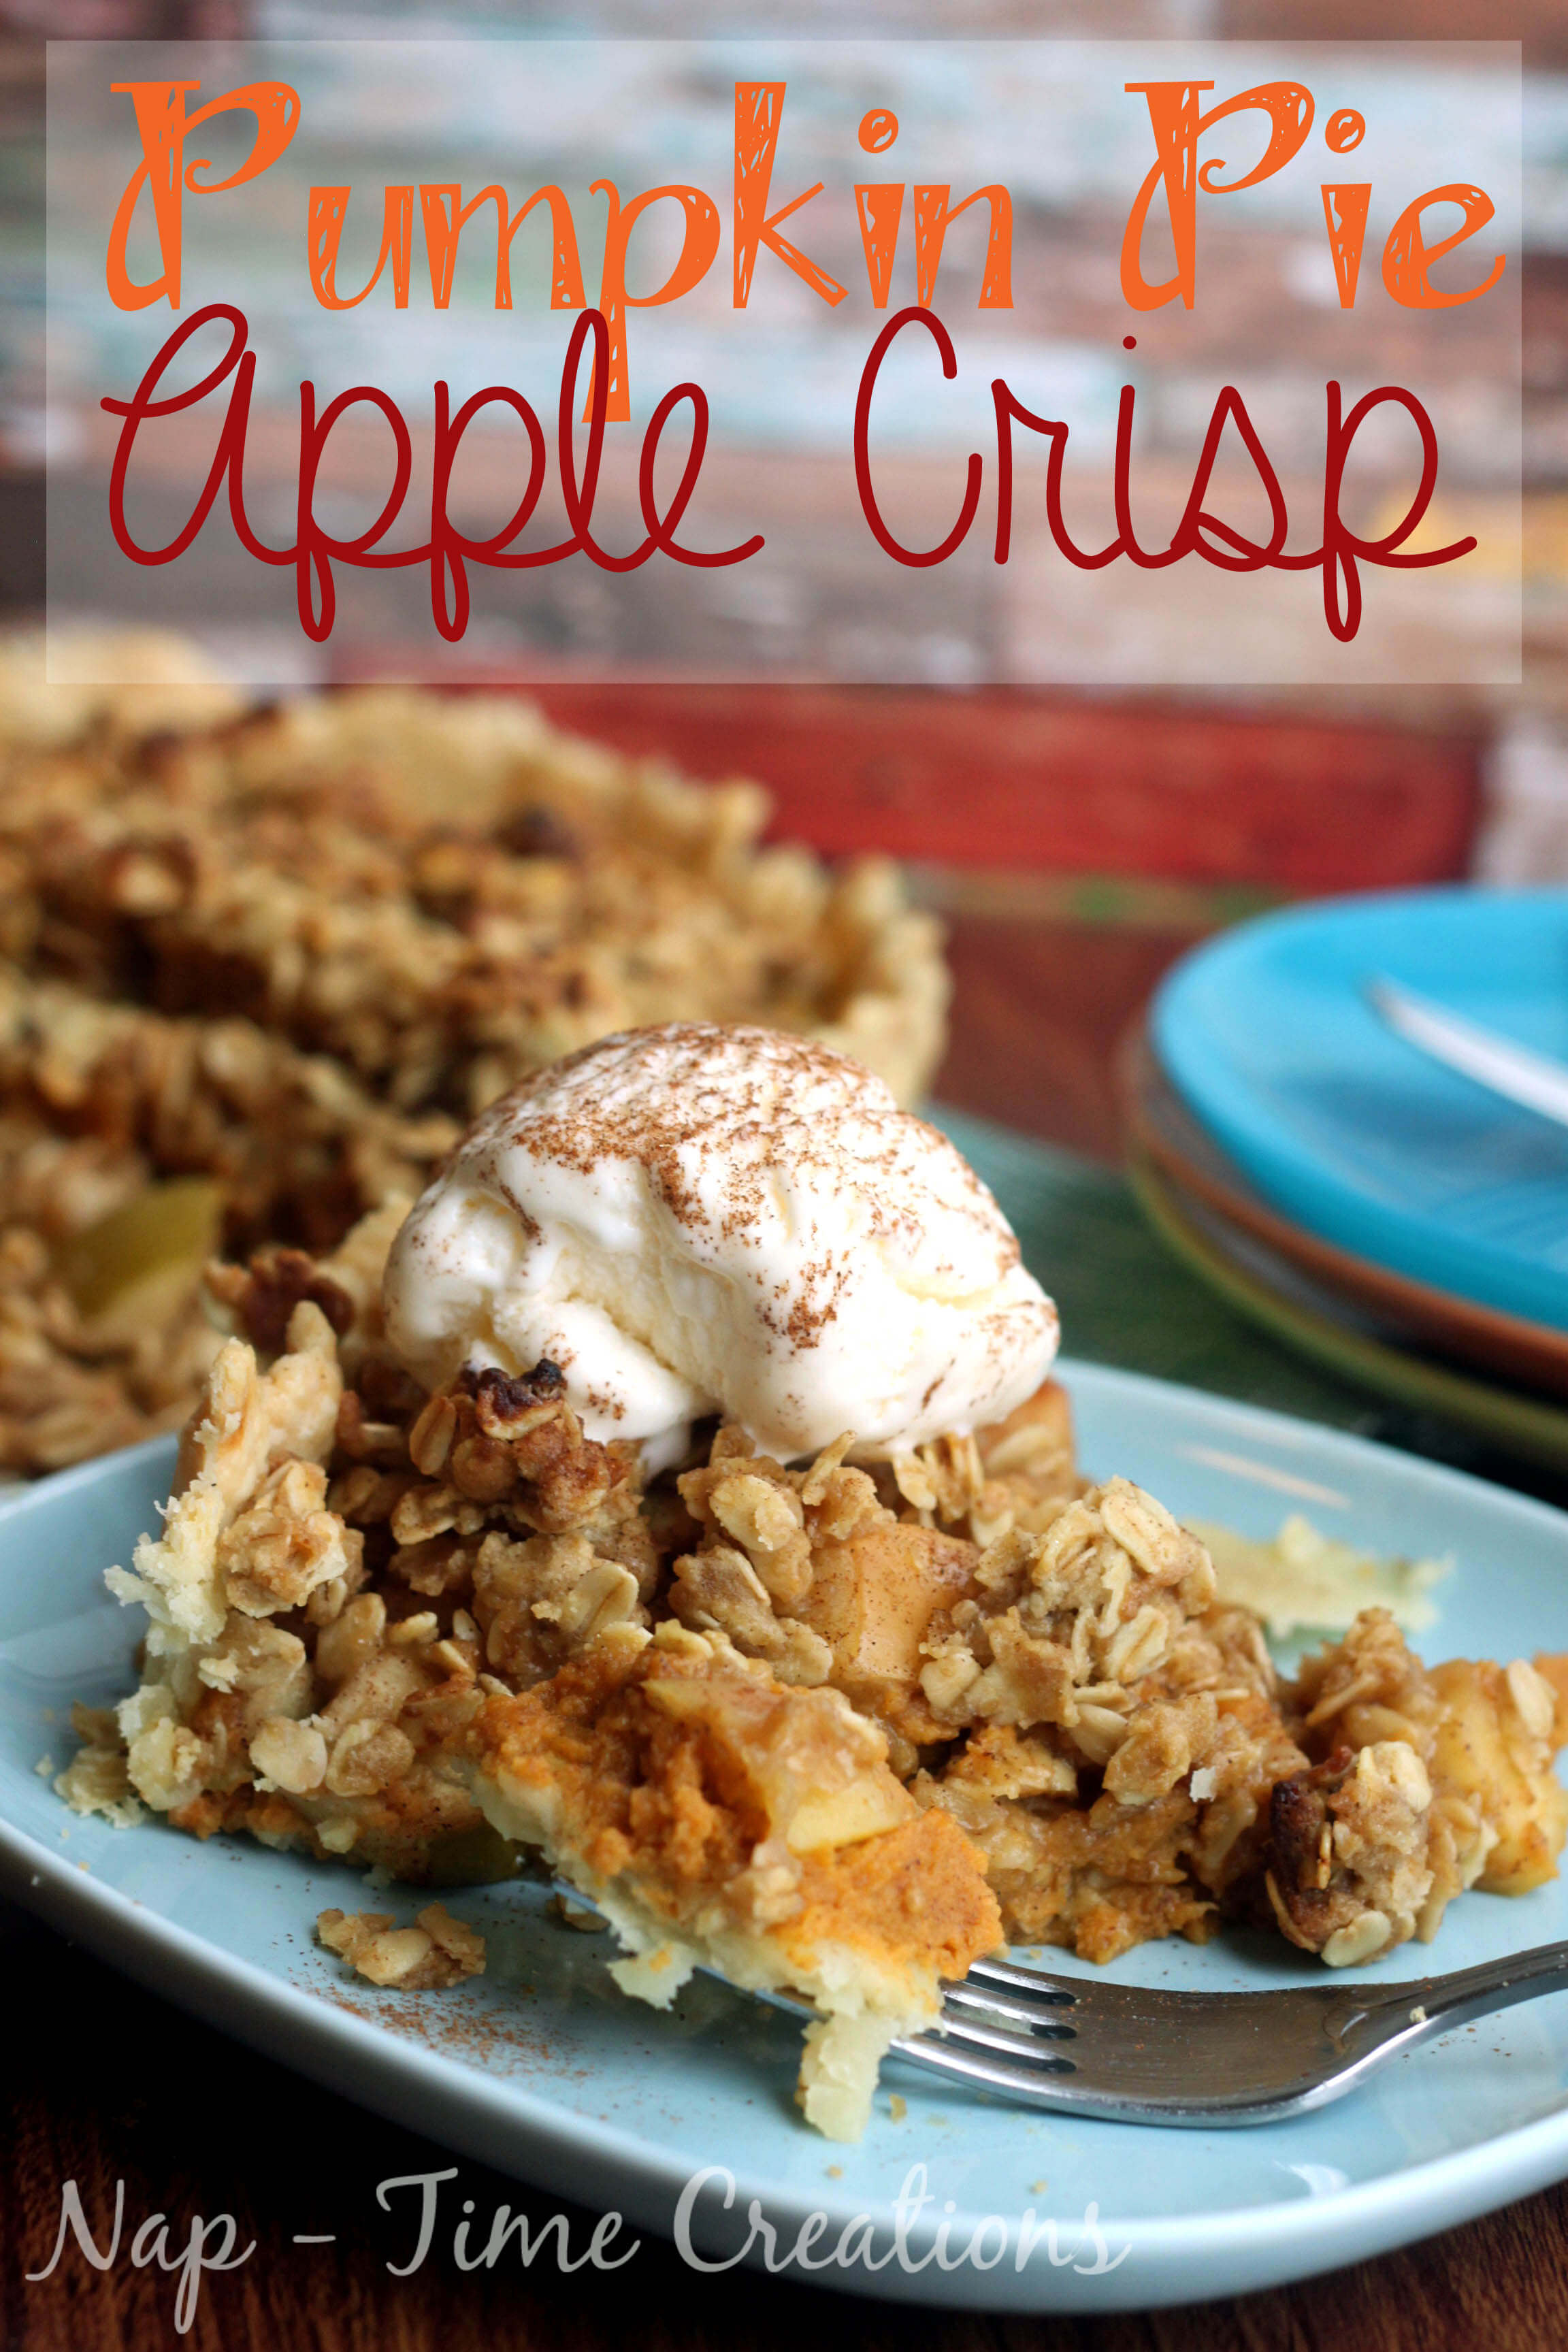 ... Apple Crisp… and I love Pumpkin Pie, so why not combine them into